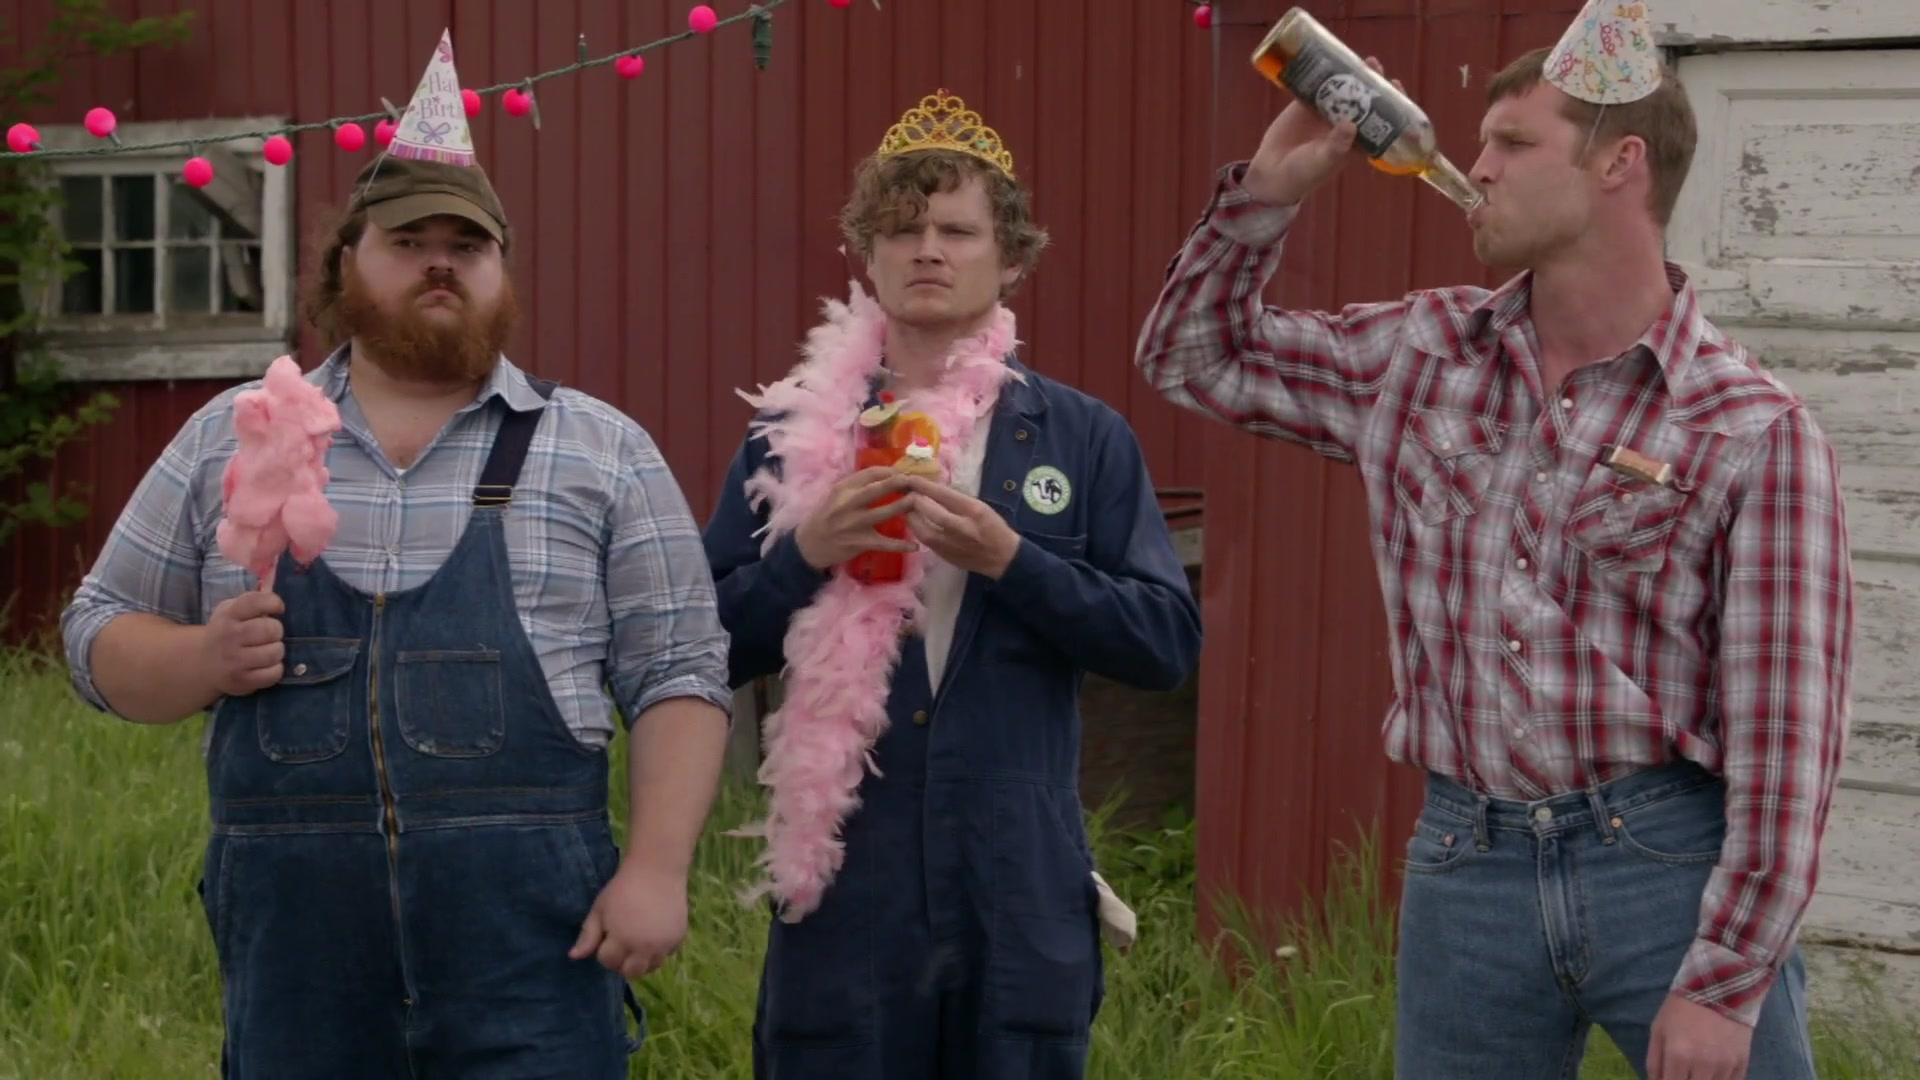 Super Soft Birthday | Letterkenny Wikia | FANDOM powered by